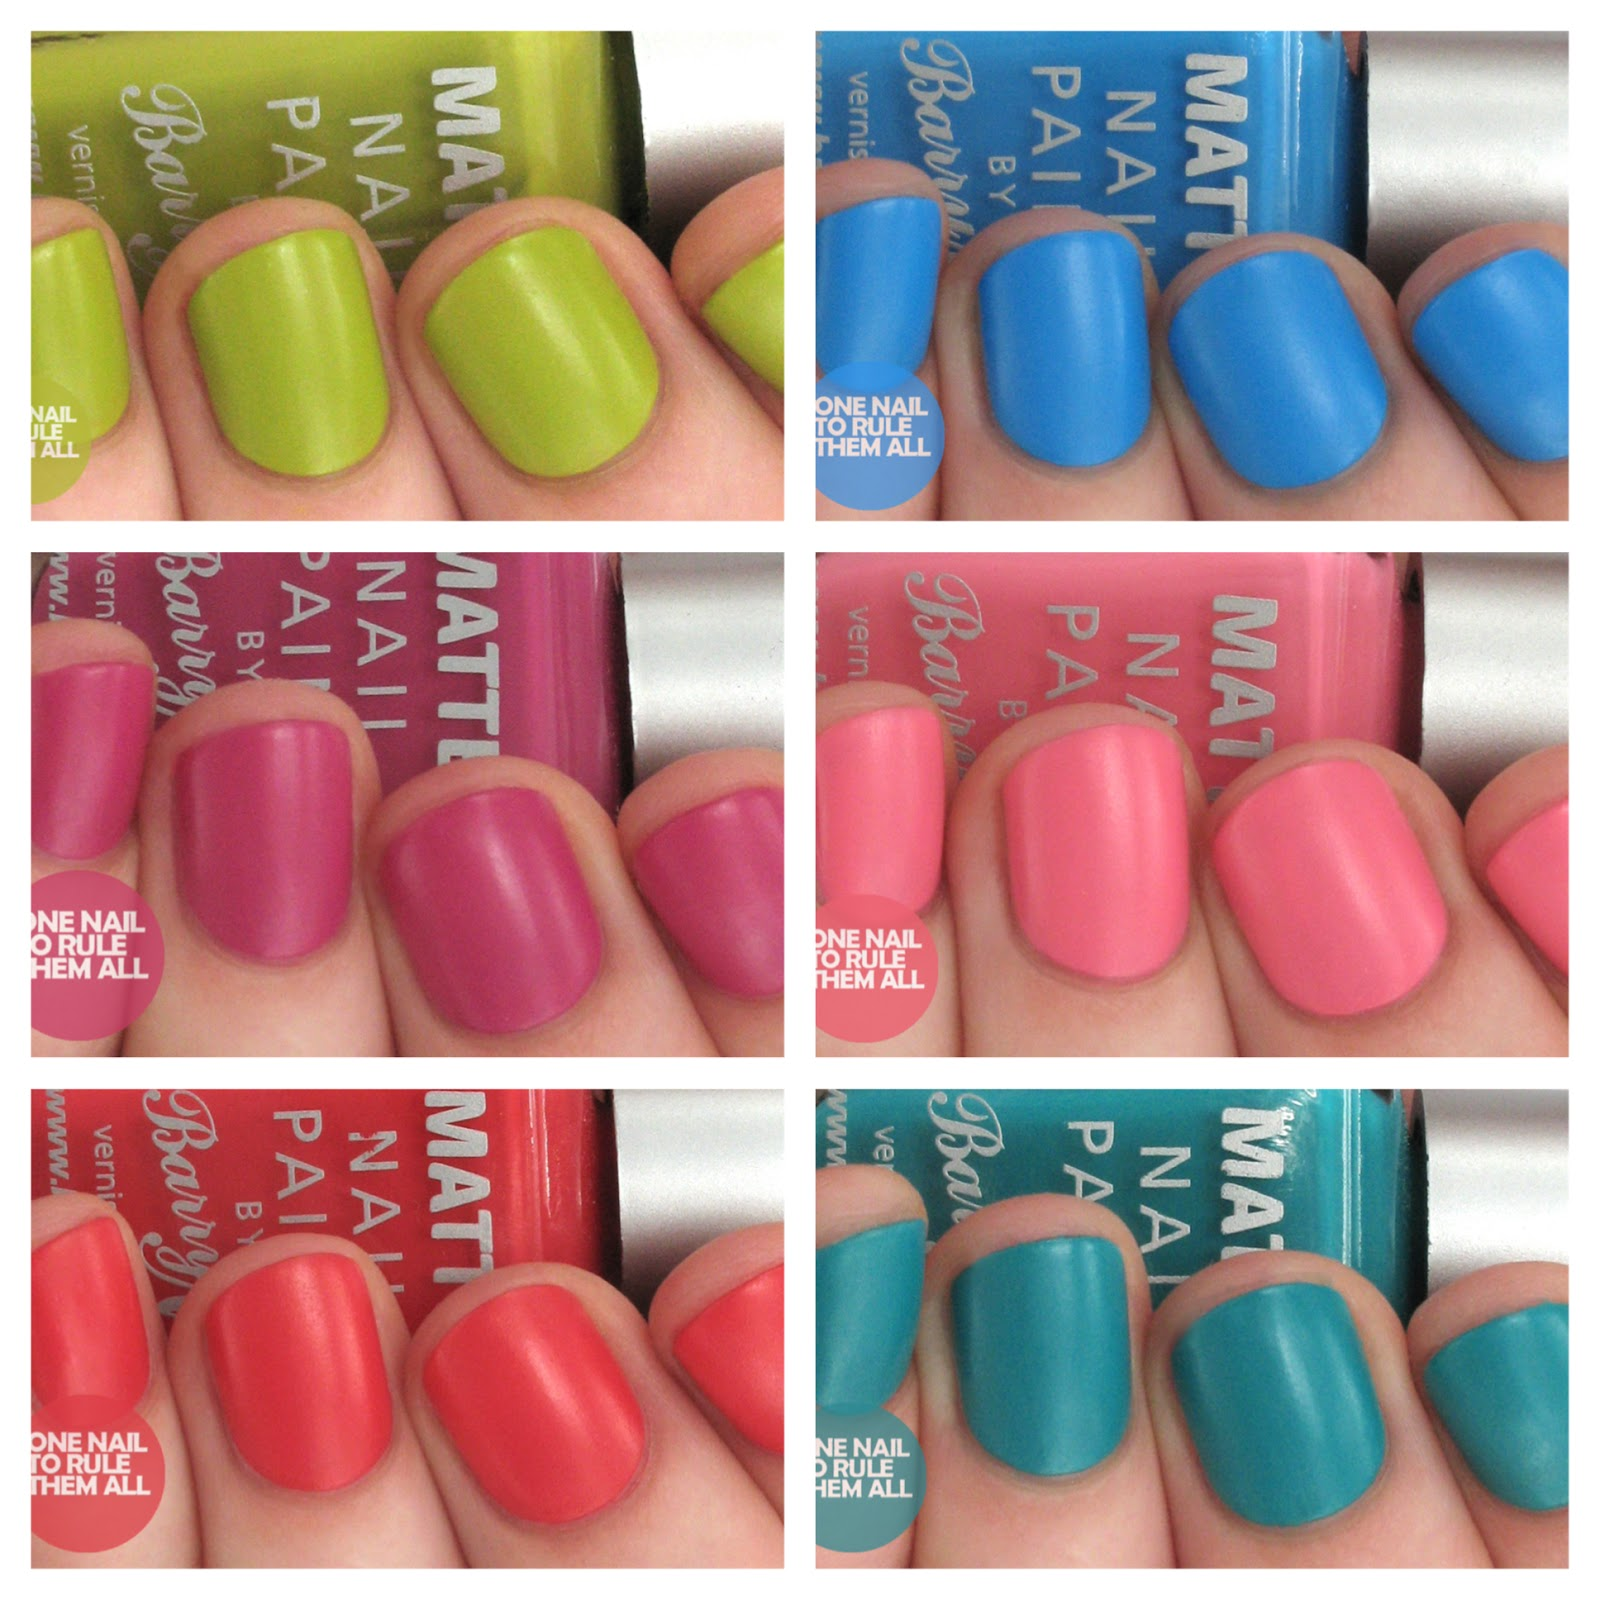 One Nail To Rule Them All Barry M Nail Art Pens Review: One Nail To Rule Them All: Barry M